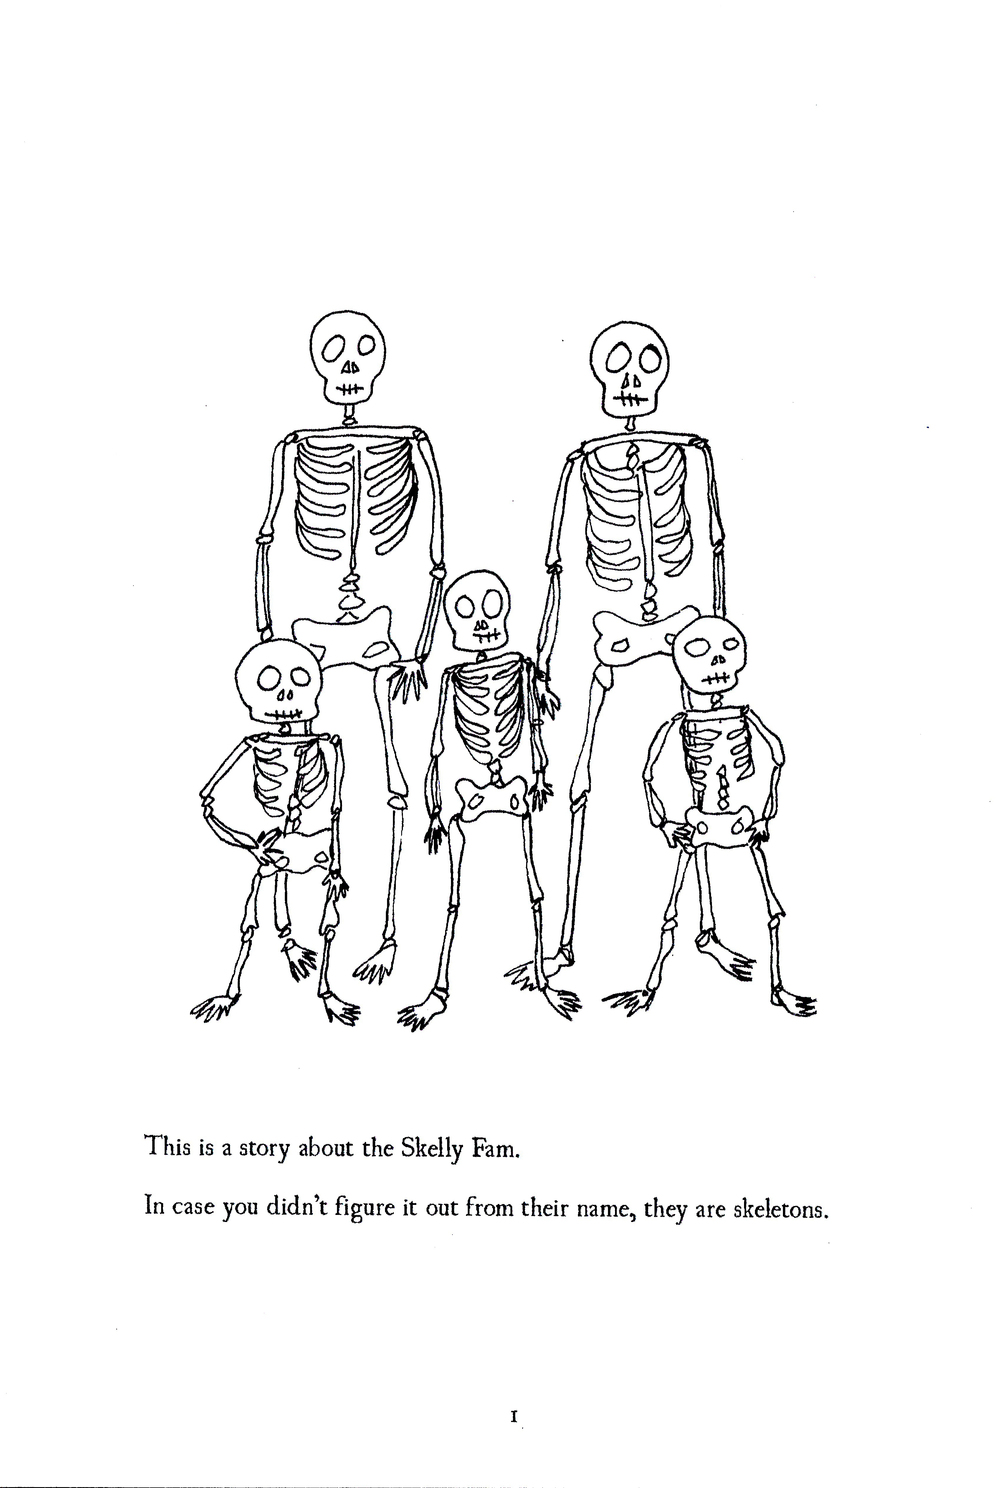 Skelly fam 1 for website.jpg